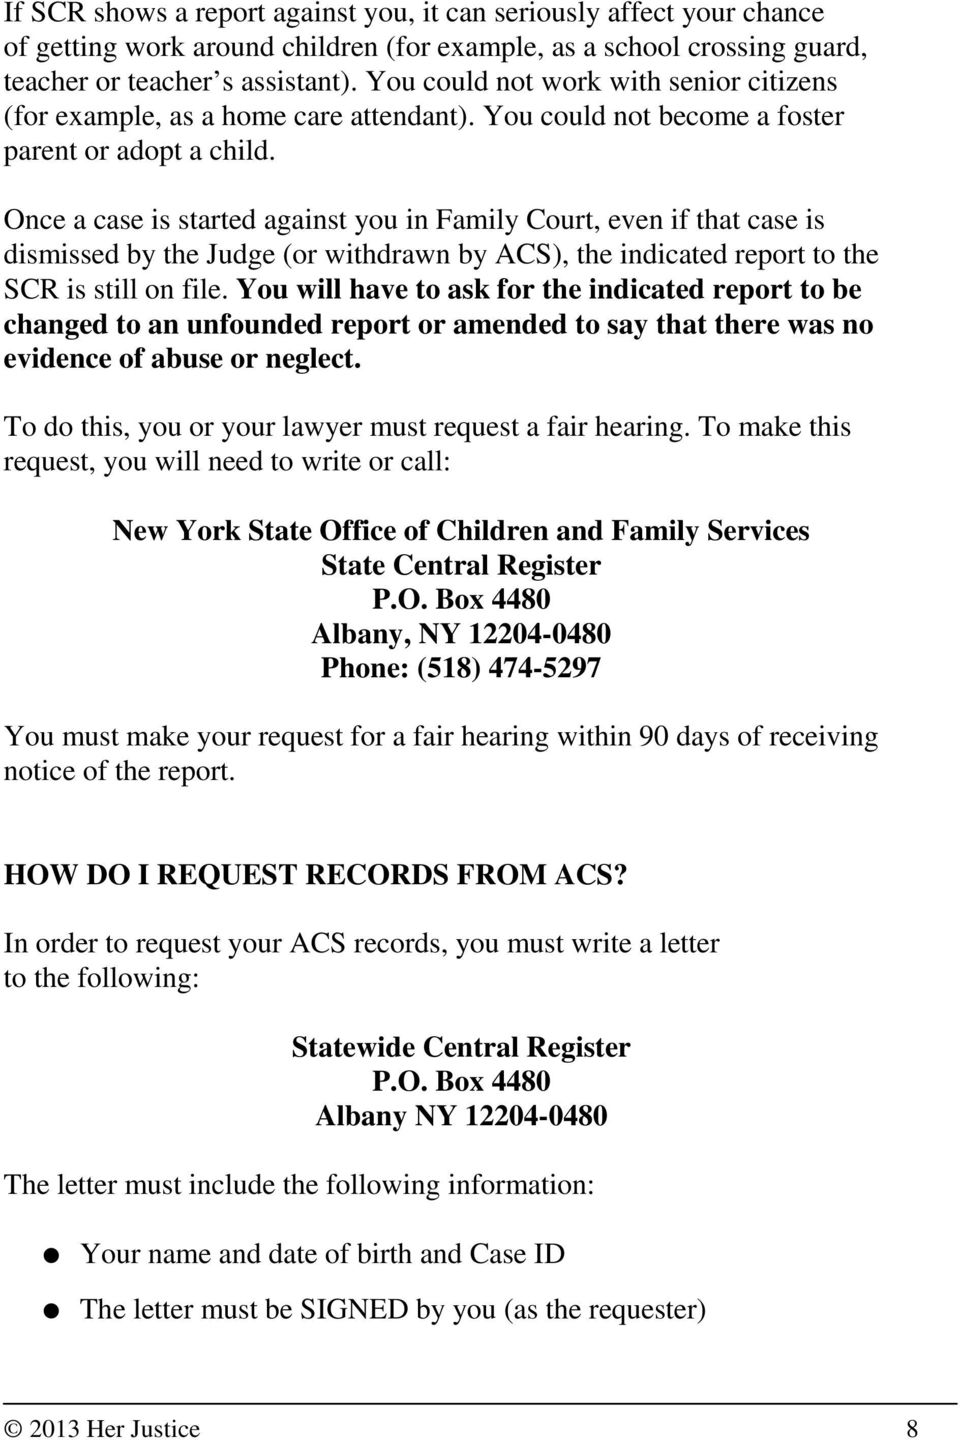 Once a case is started against you in Family Court, even if that case is dismissed by the Judge (or withdrawn by ACS), the indicated report to the SCR is still on file.